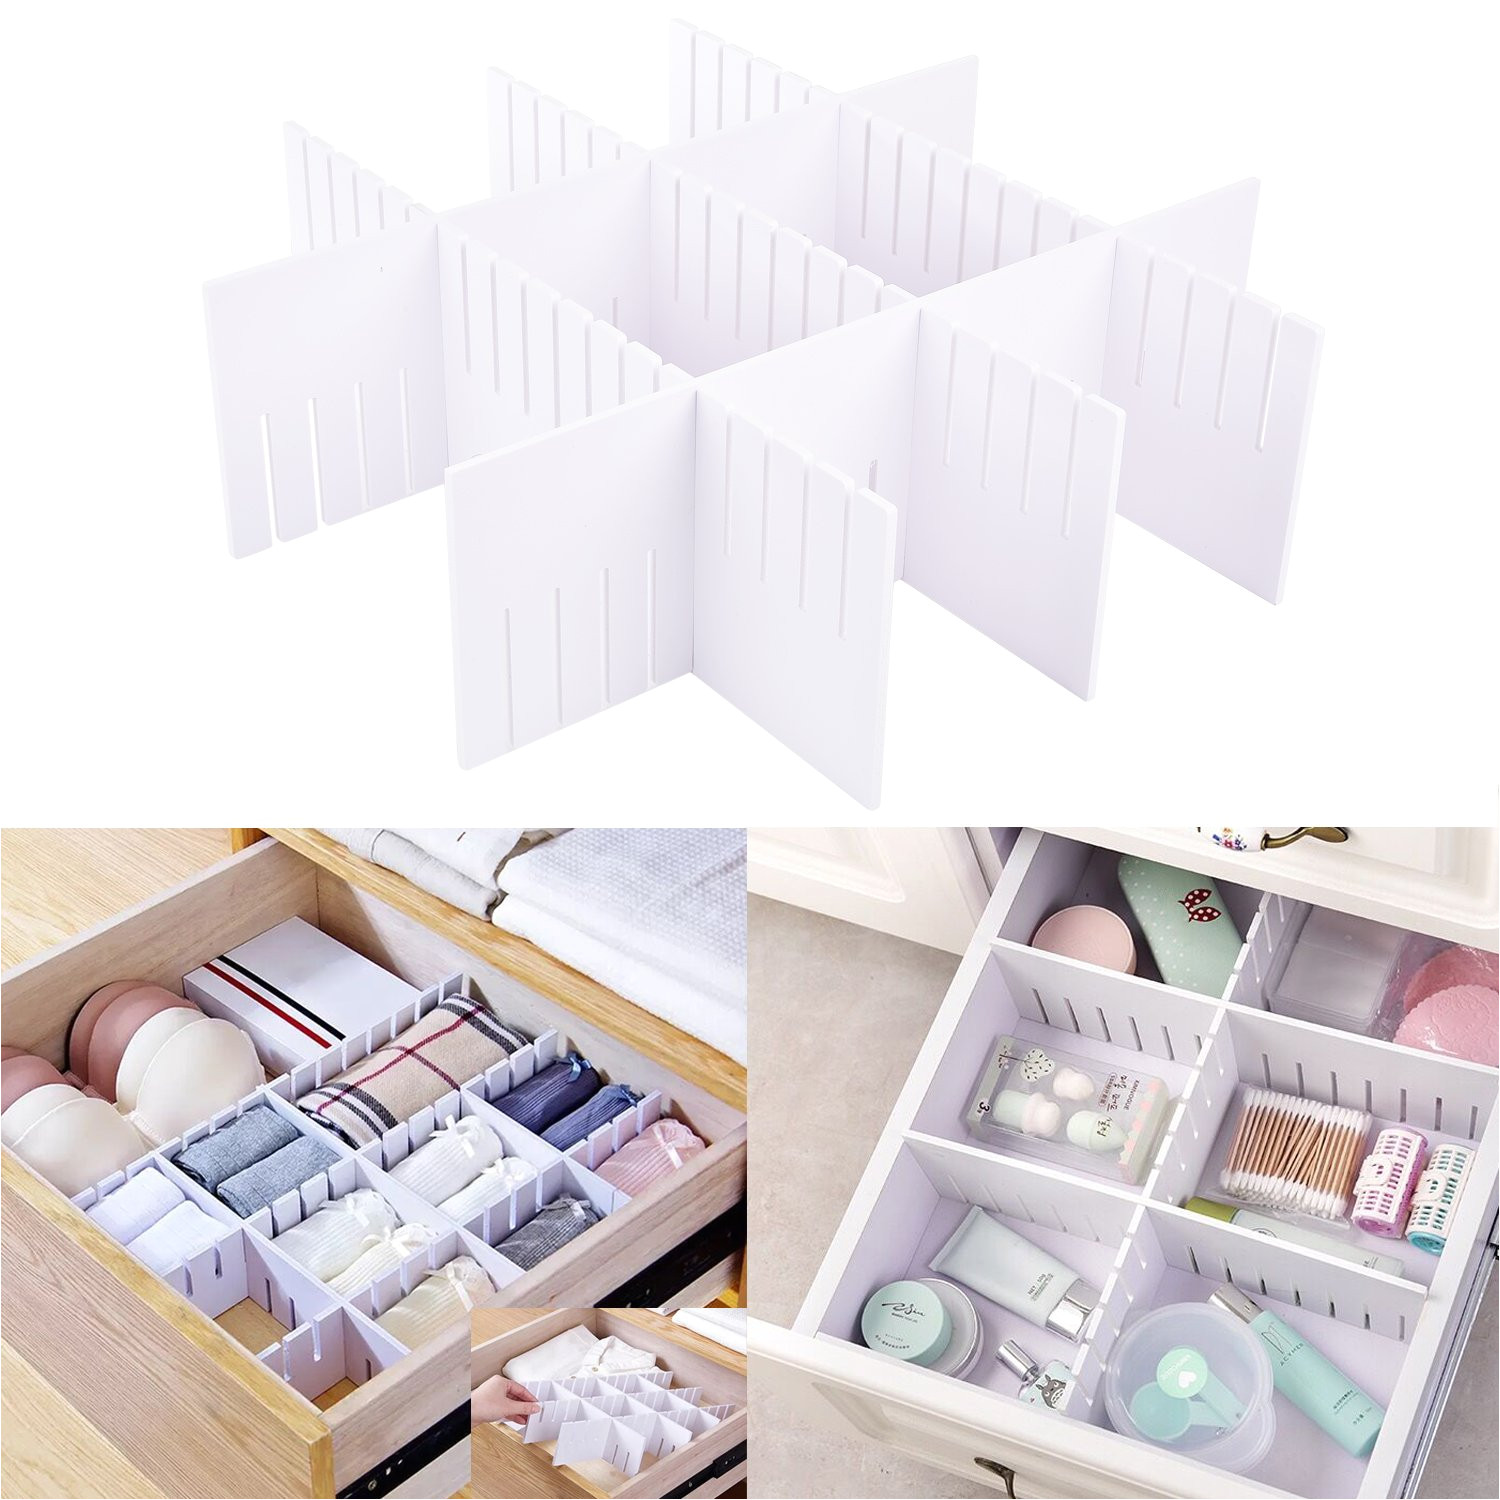 amazon com e bayker drawer organizer drawer dividers diy arbitrary splicing sub grid household storage spacer finishing shelves for home tidy closet